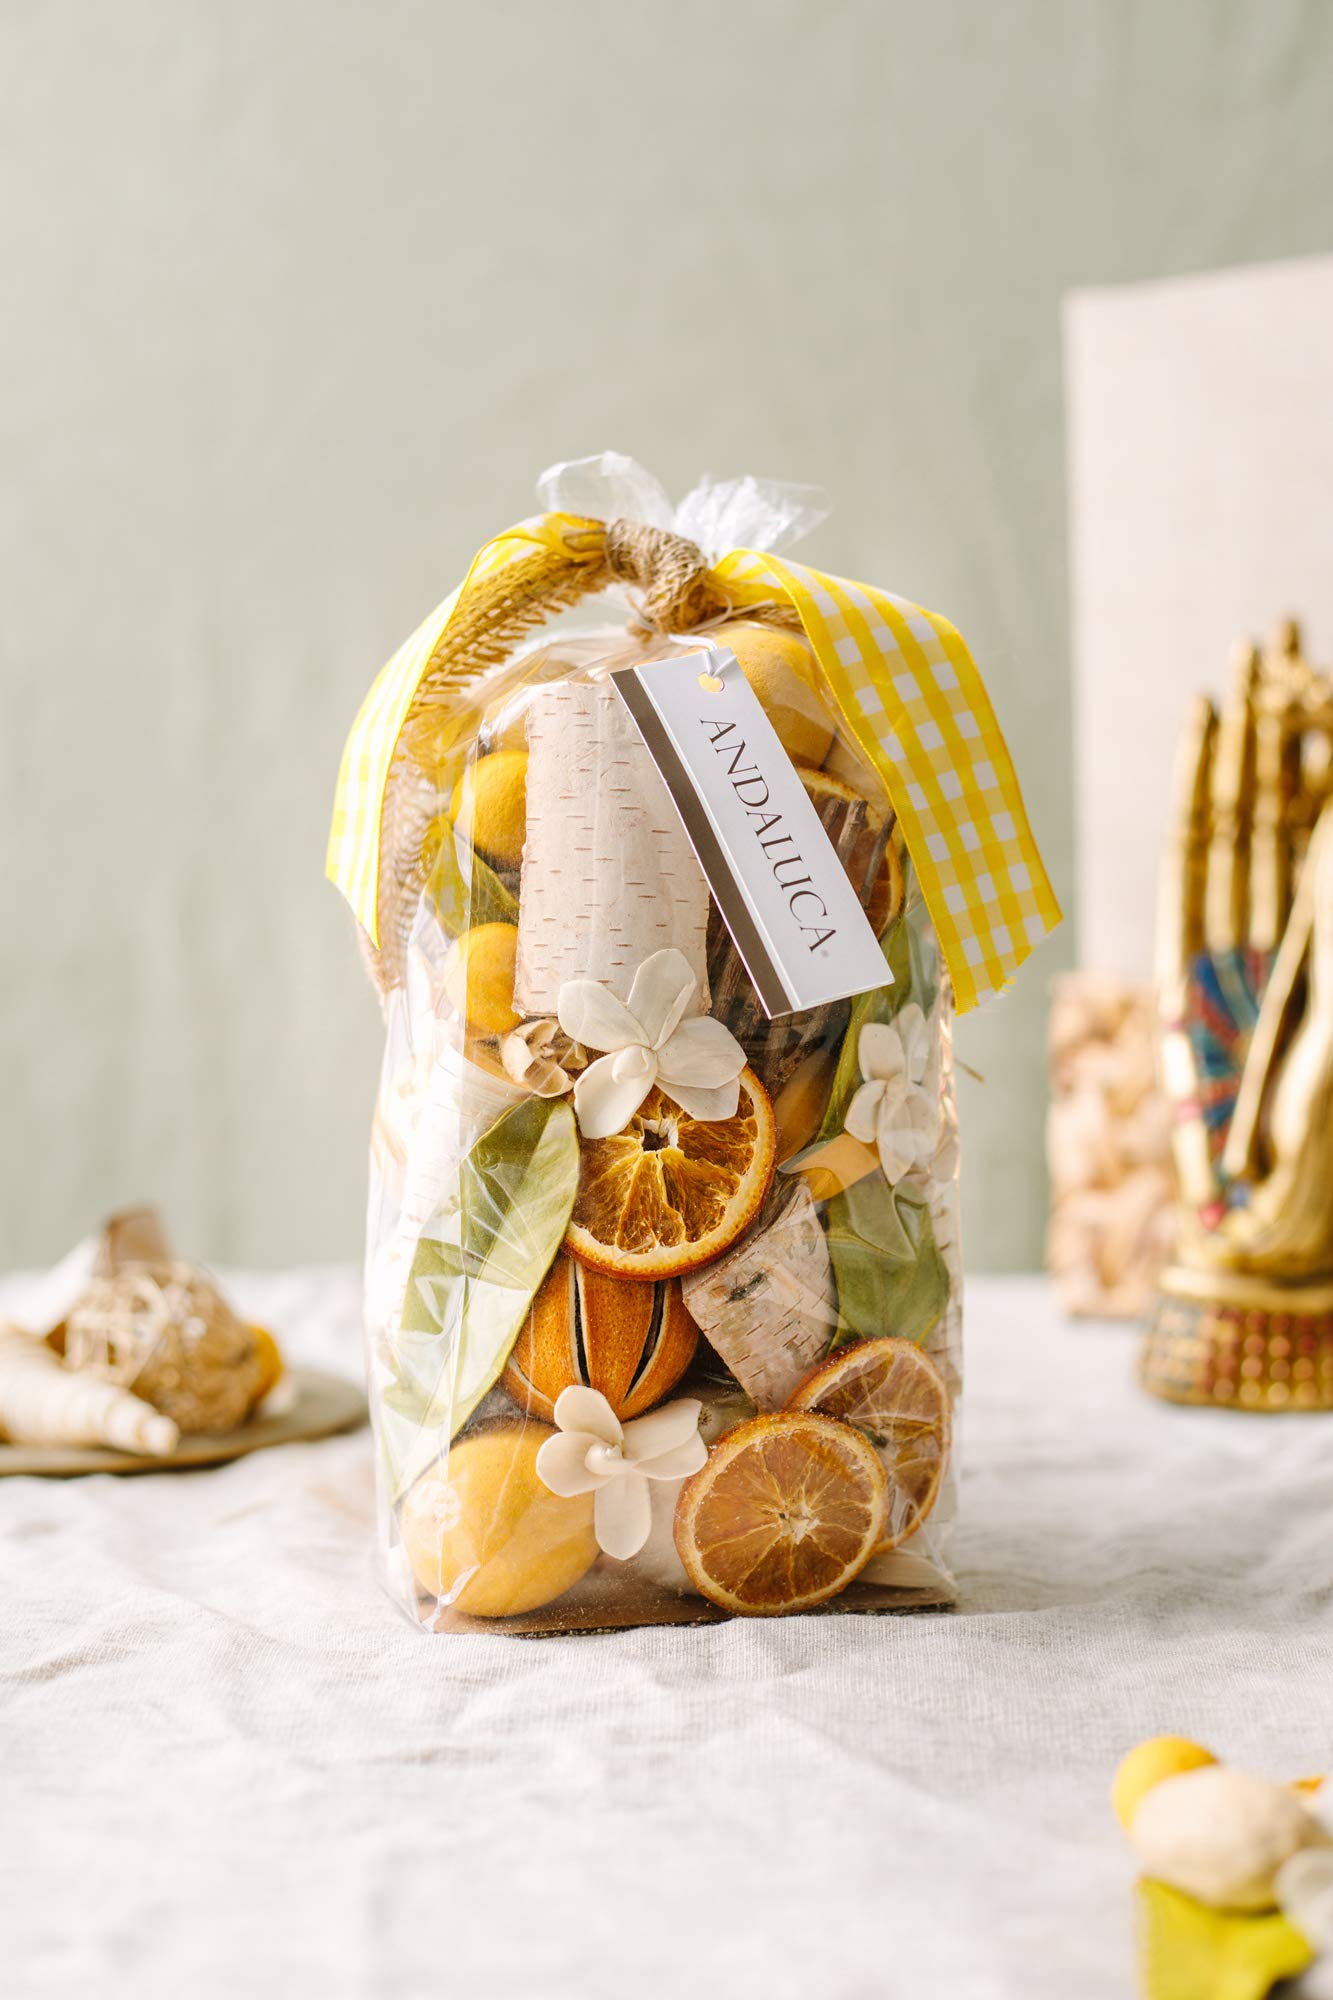 Andaluca Lemon Zest & Thyme Scented Potpourri | Made in California | Large 20 oz Bag + Fragrance Vial by Andaluca (Image #3)